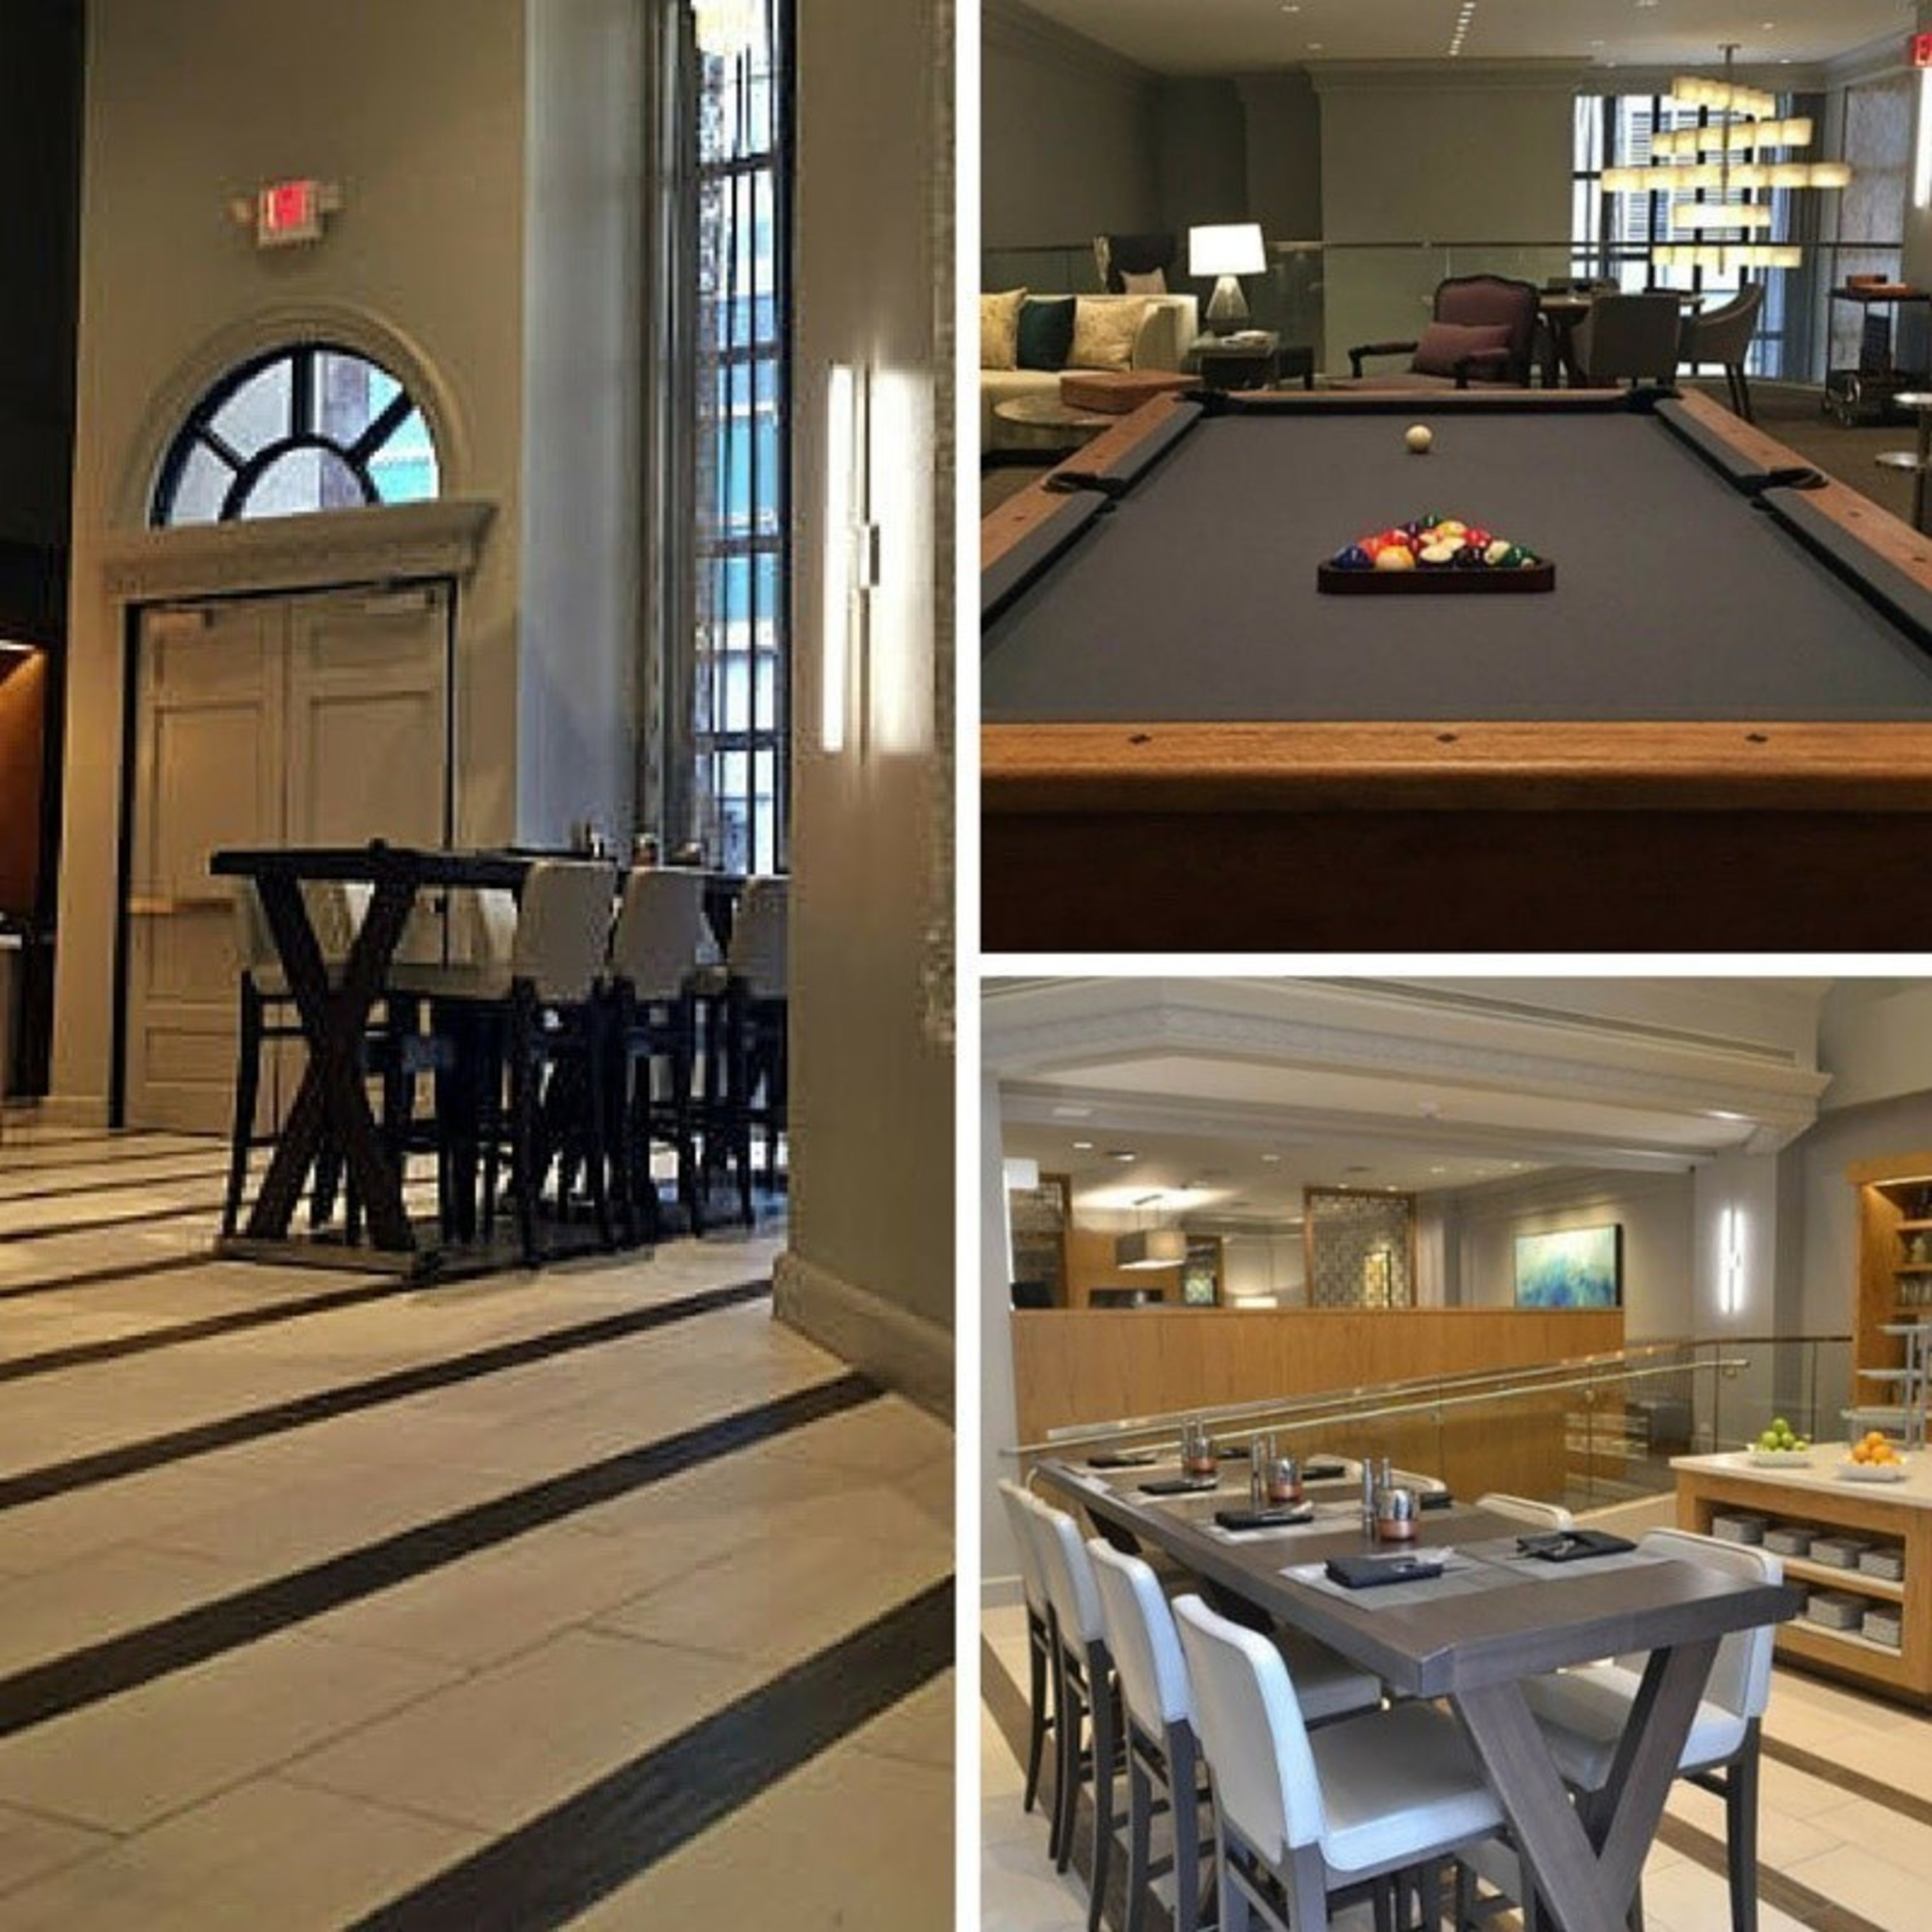 JW Marriott New Orleans invites business and group travelers to upgrade to its exclusive JW Executive Lounge when taking advantage of a 20 percent off special offered through June 14, 2016. For information, visit www.marriott.com/MSYJW or call 1-504-525-6500.